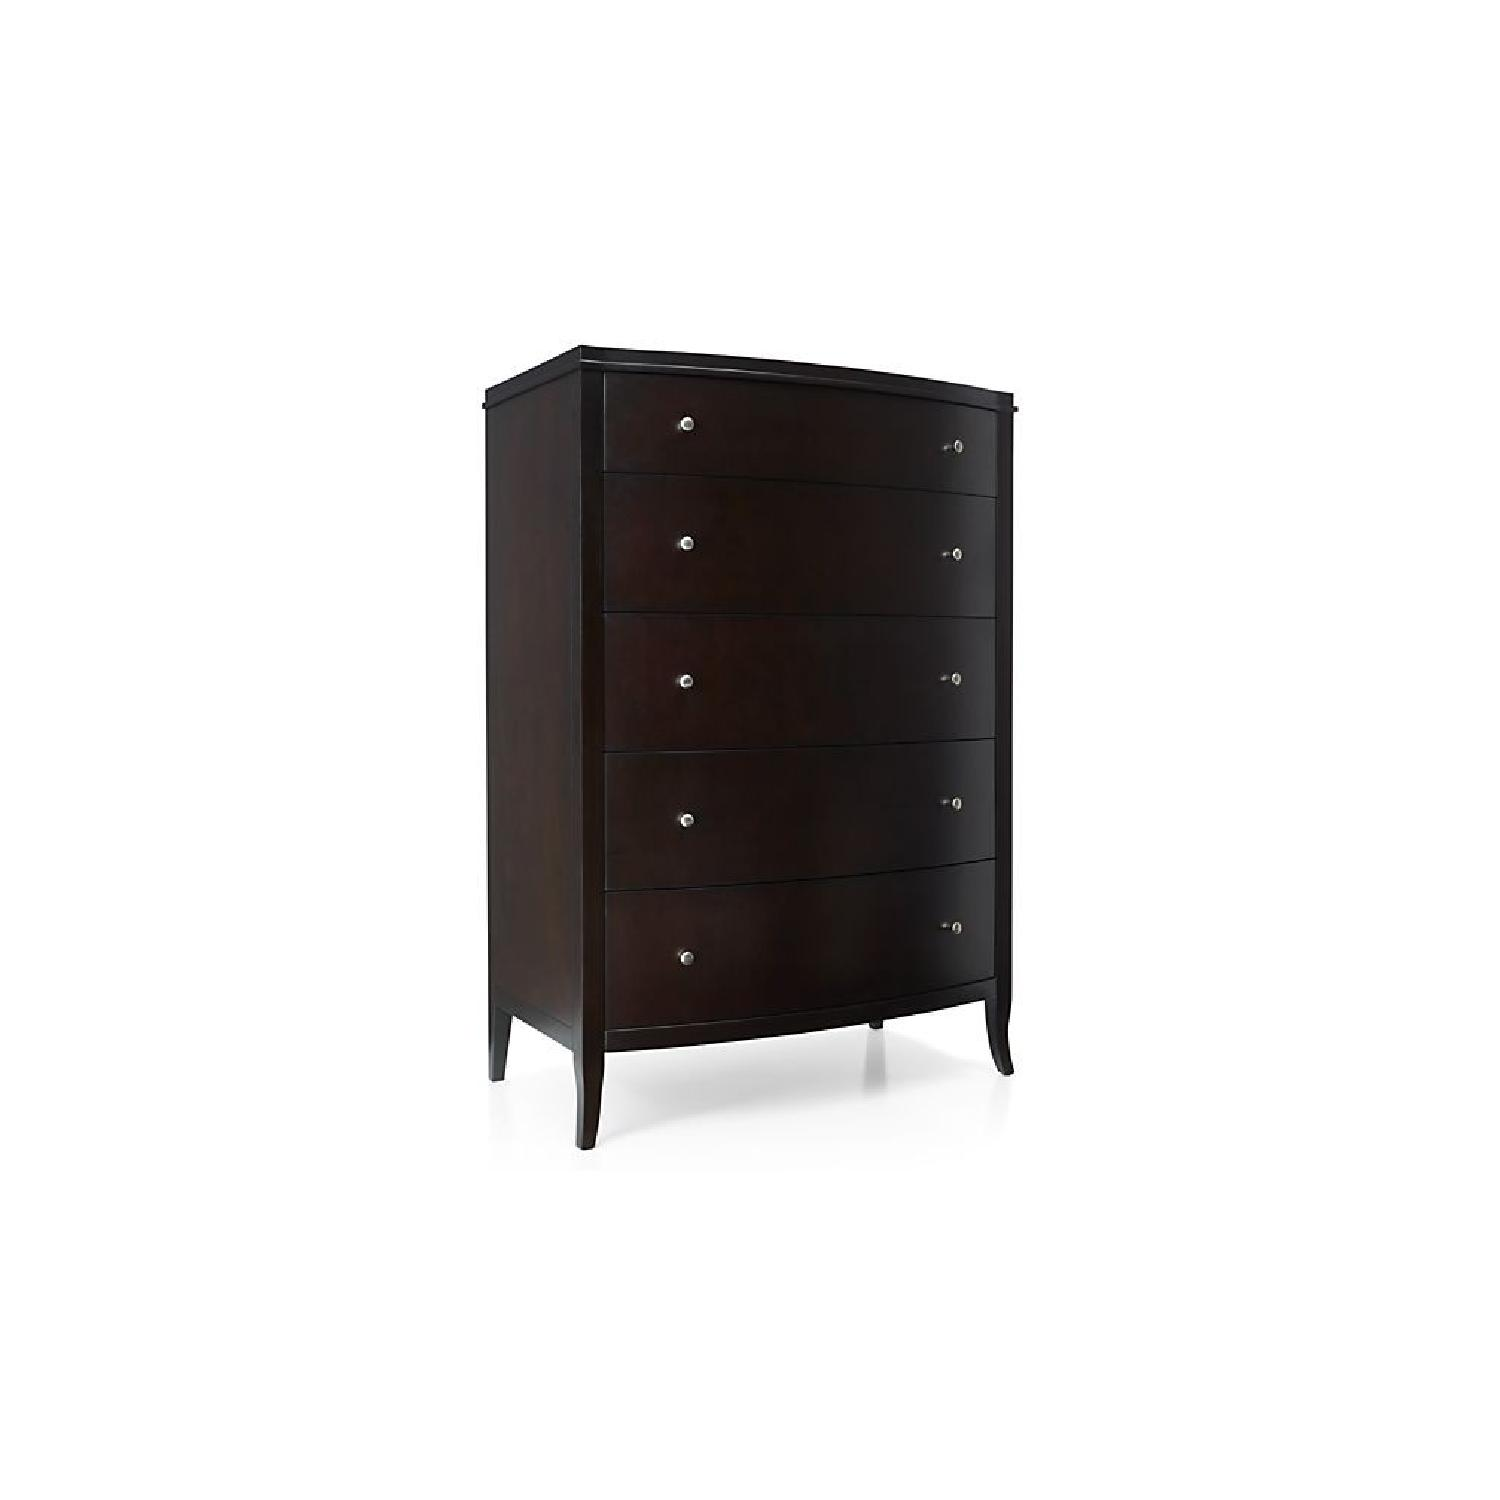 Crate & Barrel Colette Espresso 5-Drawer Chest - image-2